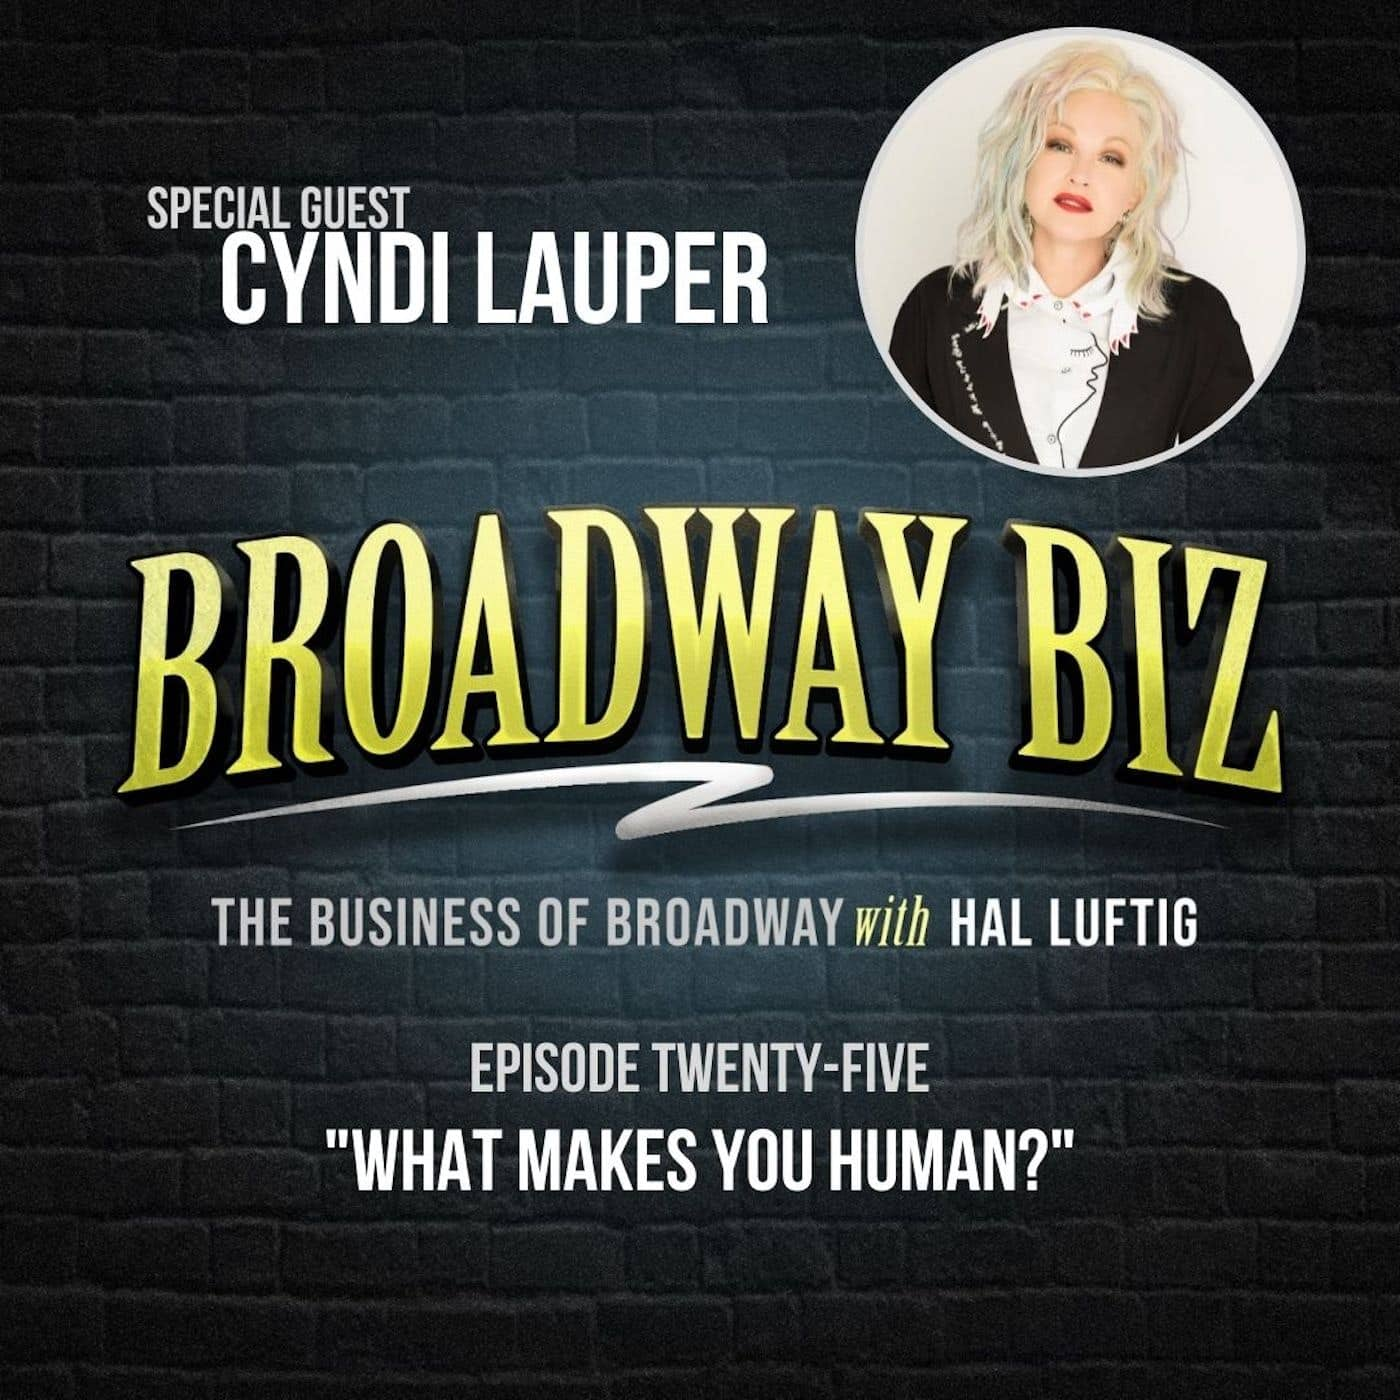 #25 - What Makes You Human? with Cyndi Lauper